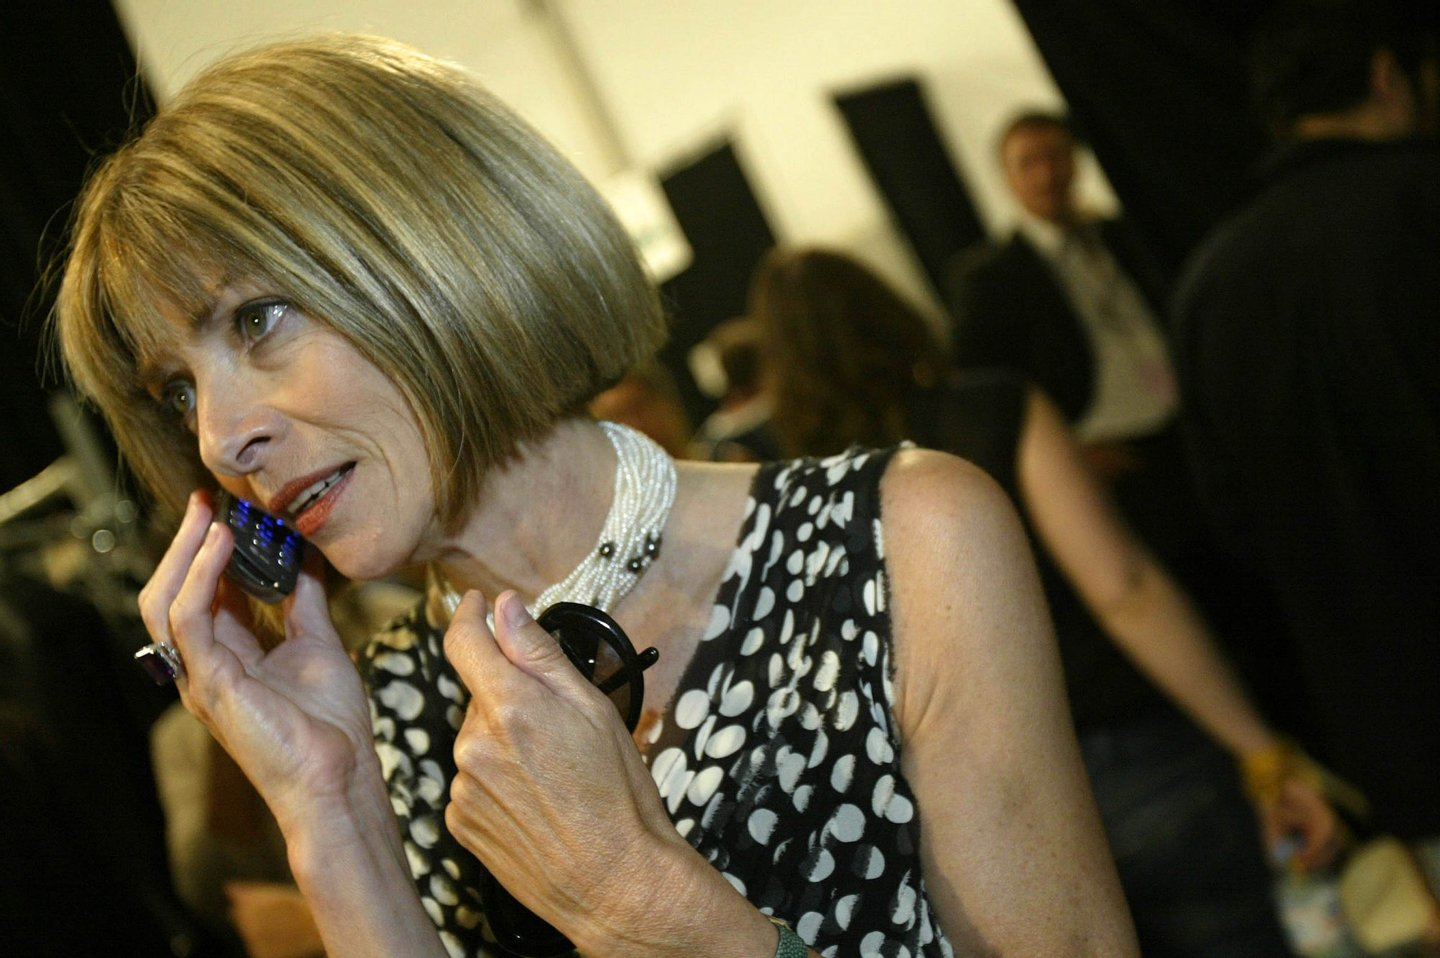 NEW YORK - SEPTEMBER 10: Anna Wintour uses er cell phone backstage during the Zac Posen show during Olympus Fashion Week Spring 2005 at the Theatre in Bryant Park September 10, 2004 in New York City. (Photo by Paul Hawthorne/Getty Images)